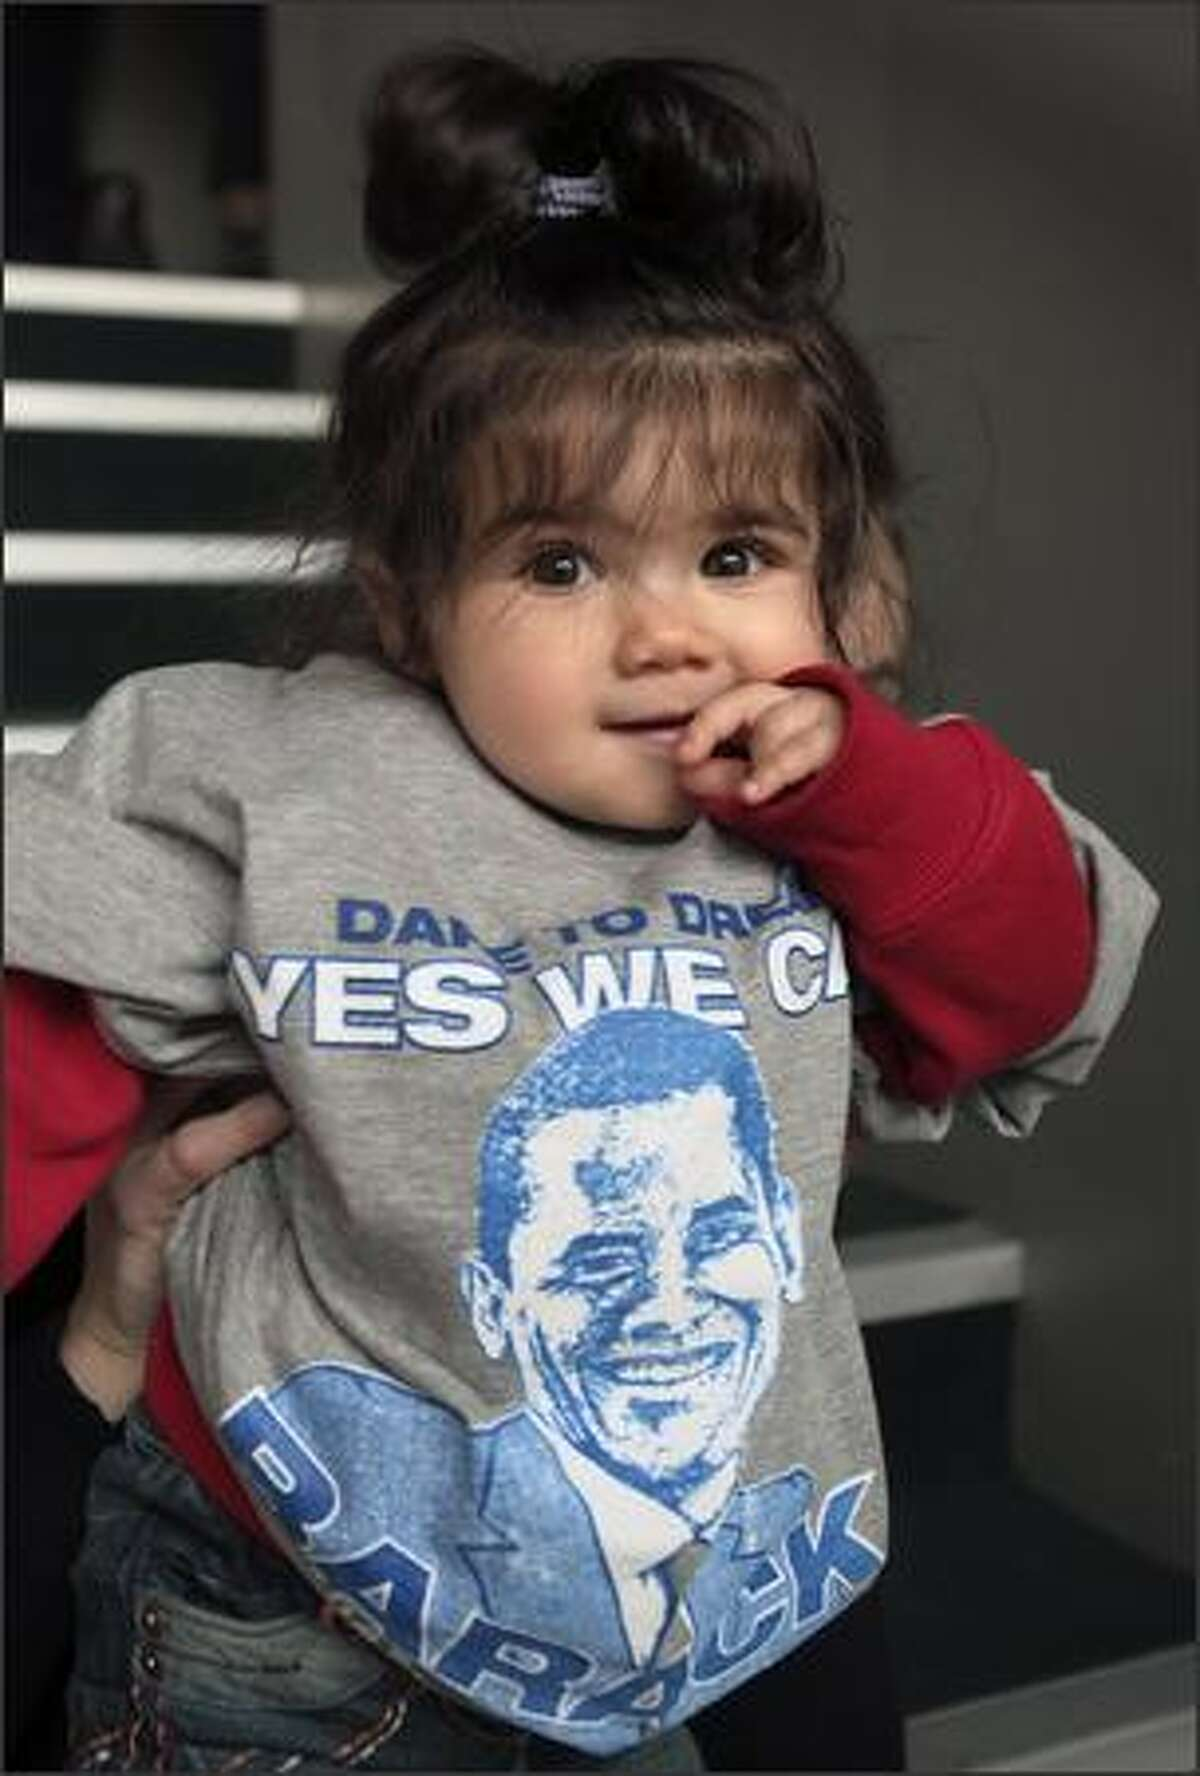 A young girl wears a Barack Obama shirt at the Bernie Grant Arts Centre in Tottenham, London, as people gather to watch a live broadcast of the inauguration of U.S. President Barack Obama, on Tuesday. Hundreds of thousands of people streamed into Washington Tuesday to witness the inauguration of Barack Obama as the first black U.S. president, in a moment of national unity after years of political tumult.